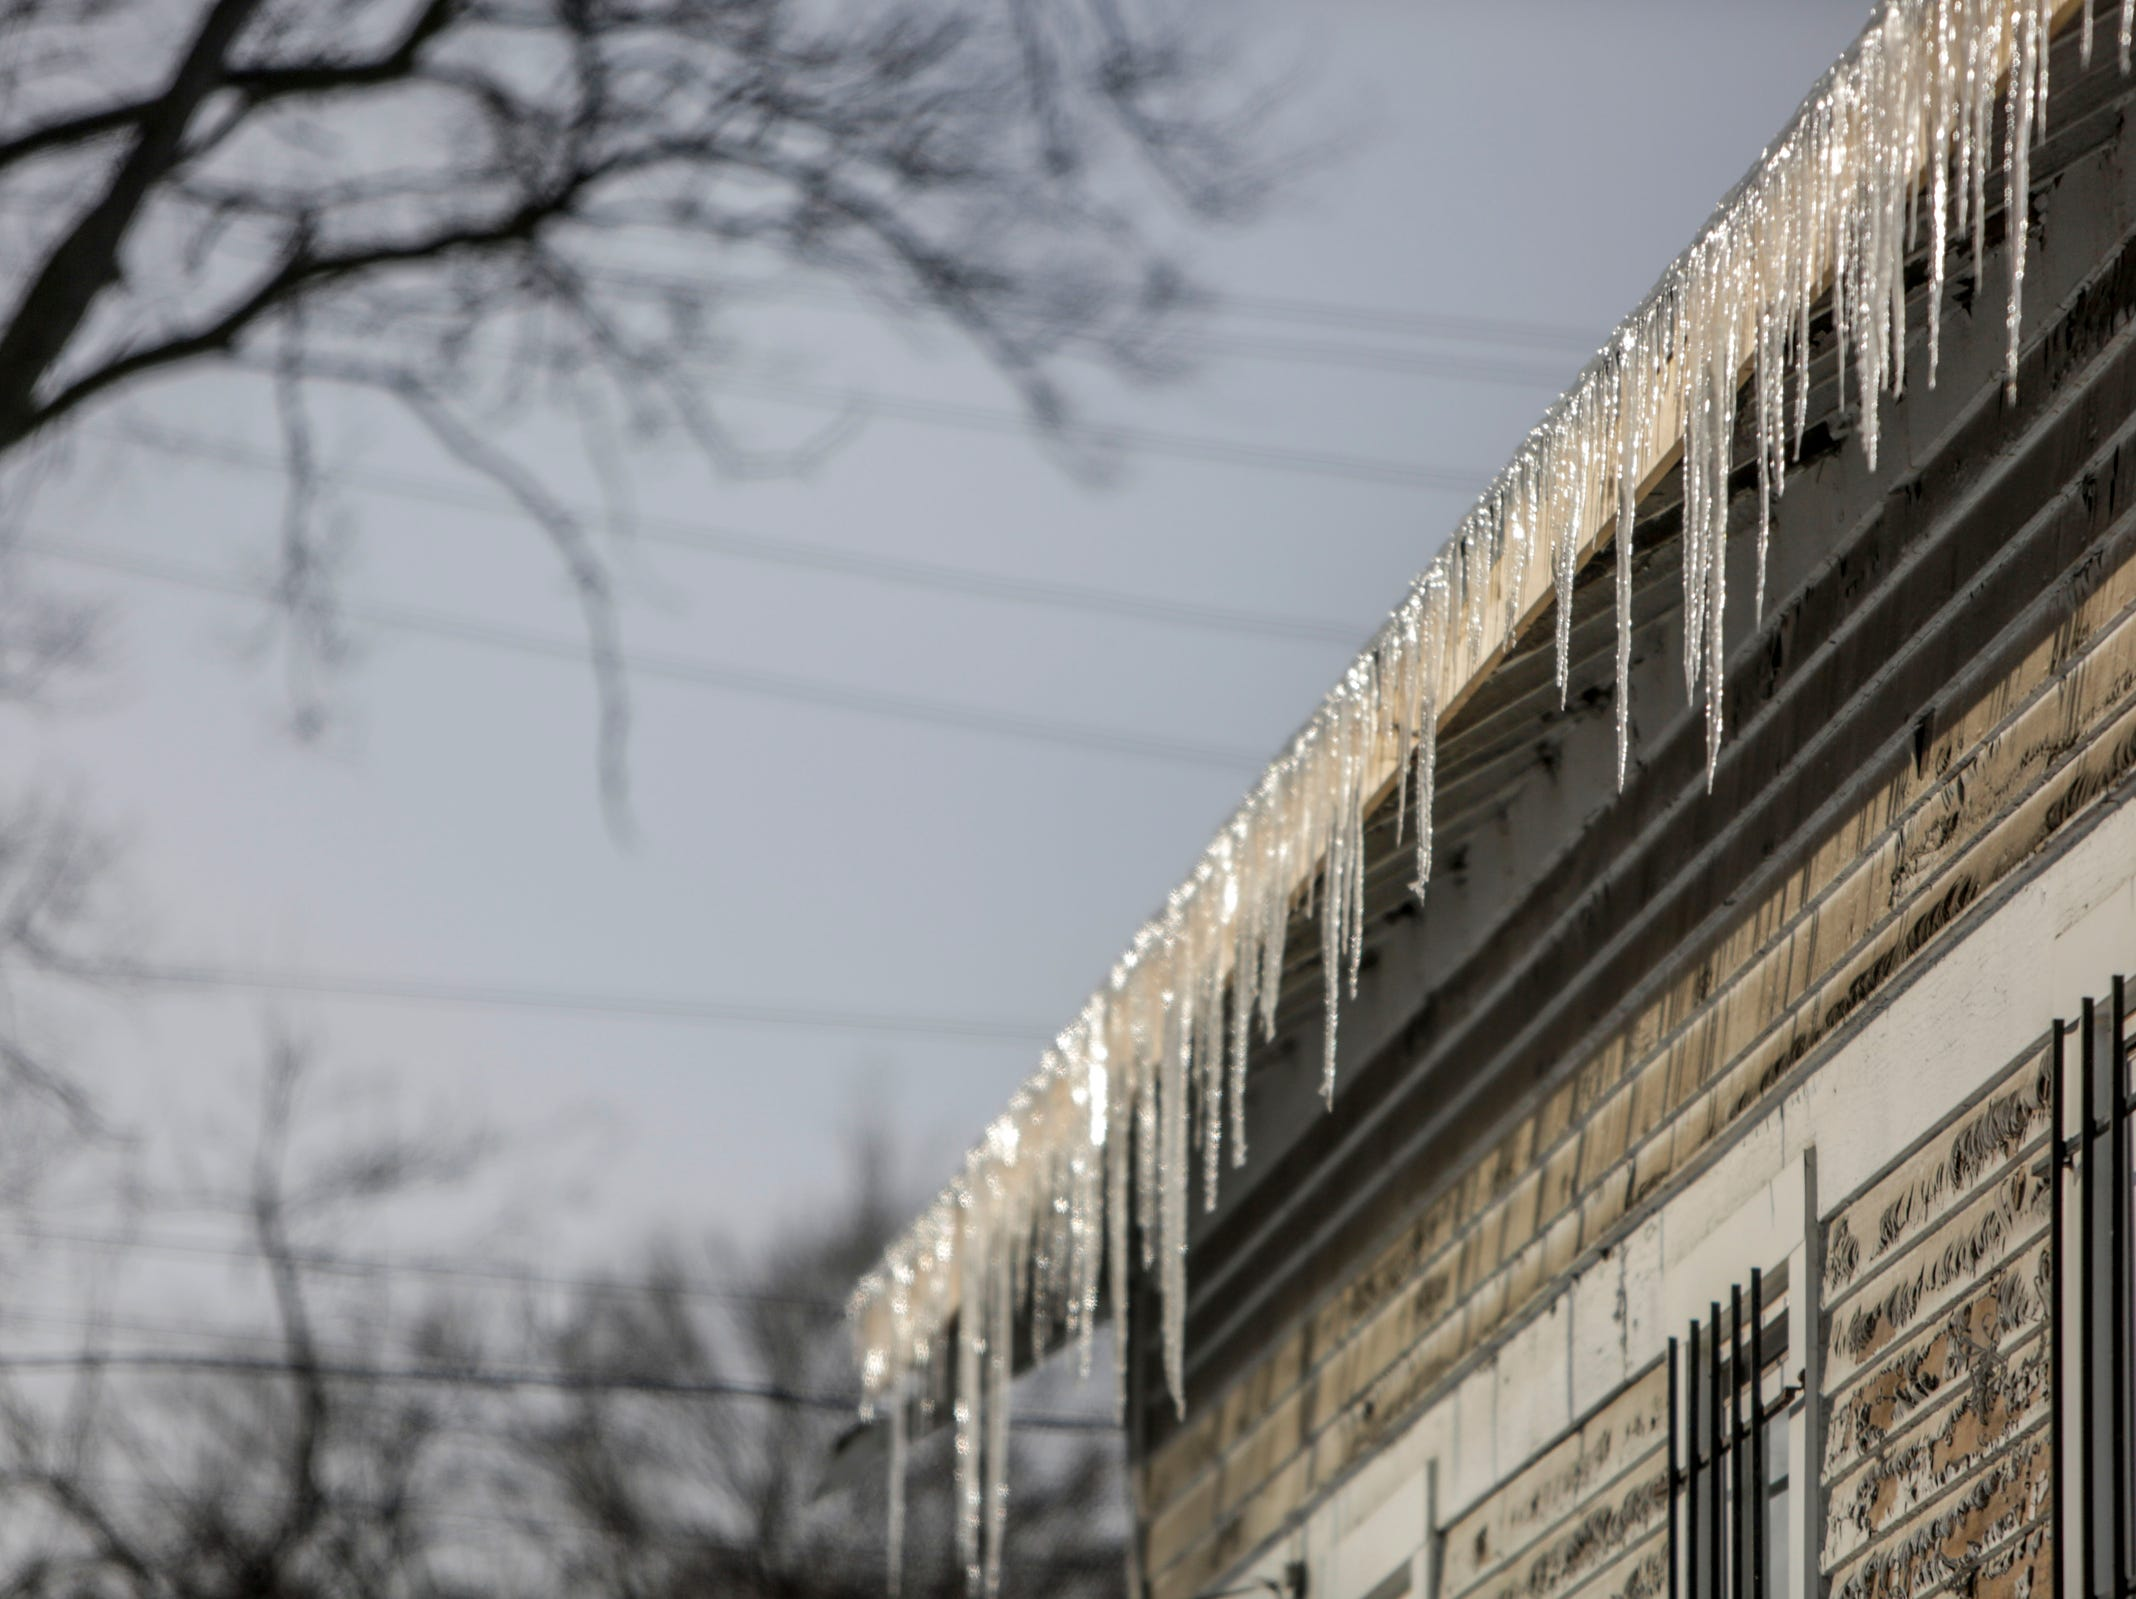 Icicles hang from a house in Detroit during subzero temperatures on Wednesday, Jan. 30, 2019.